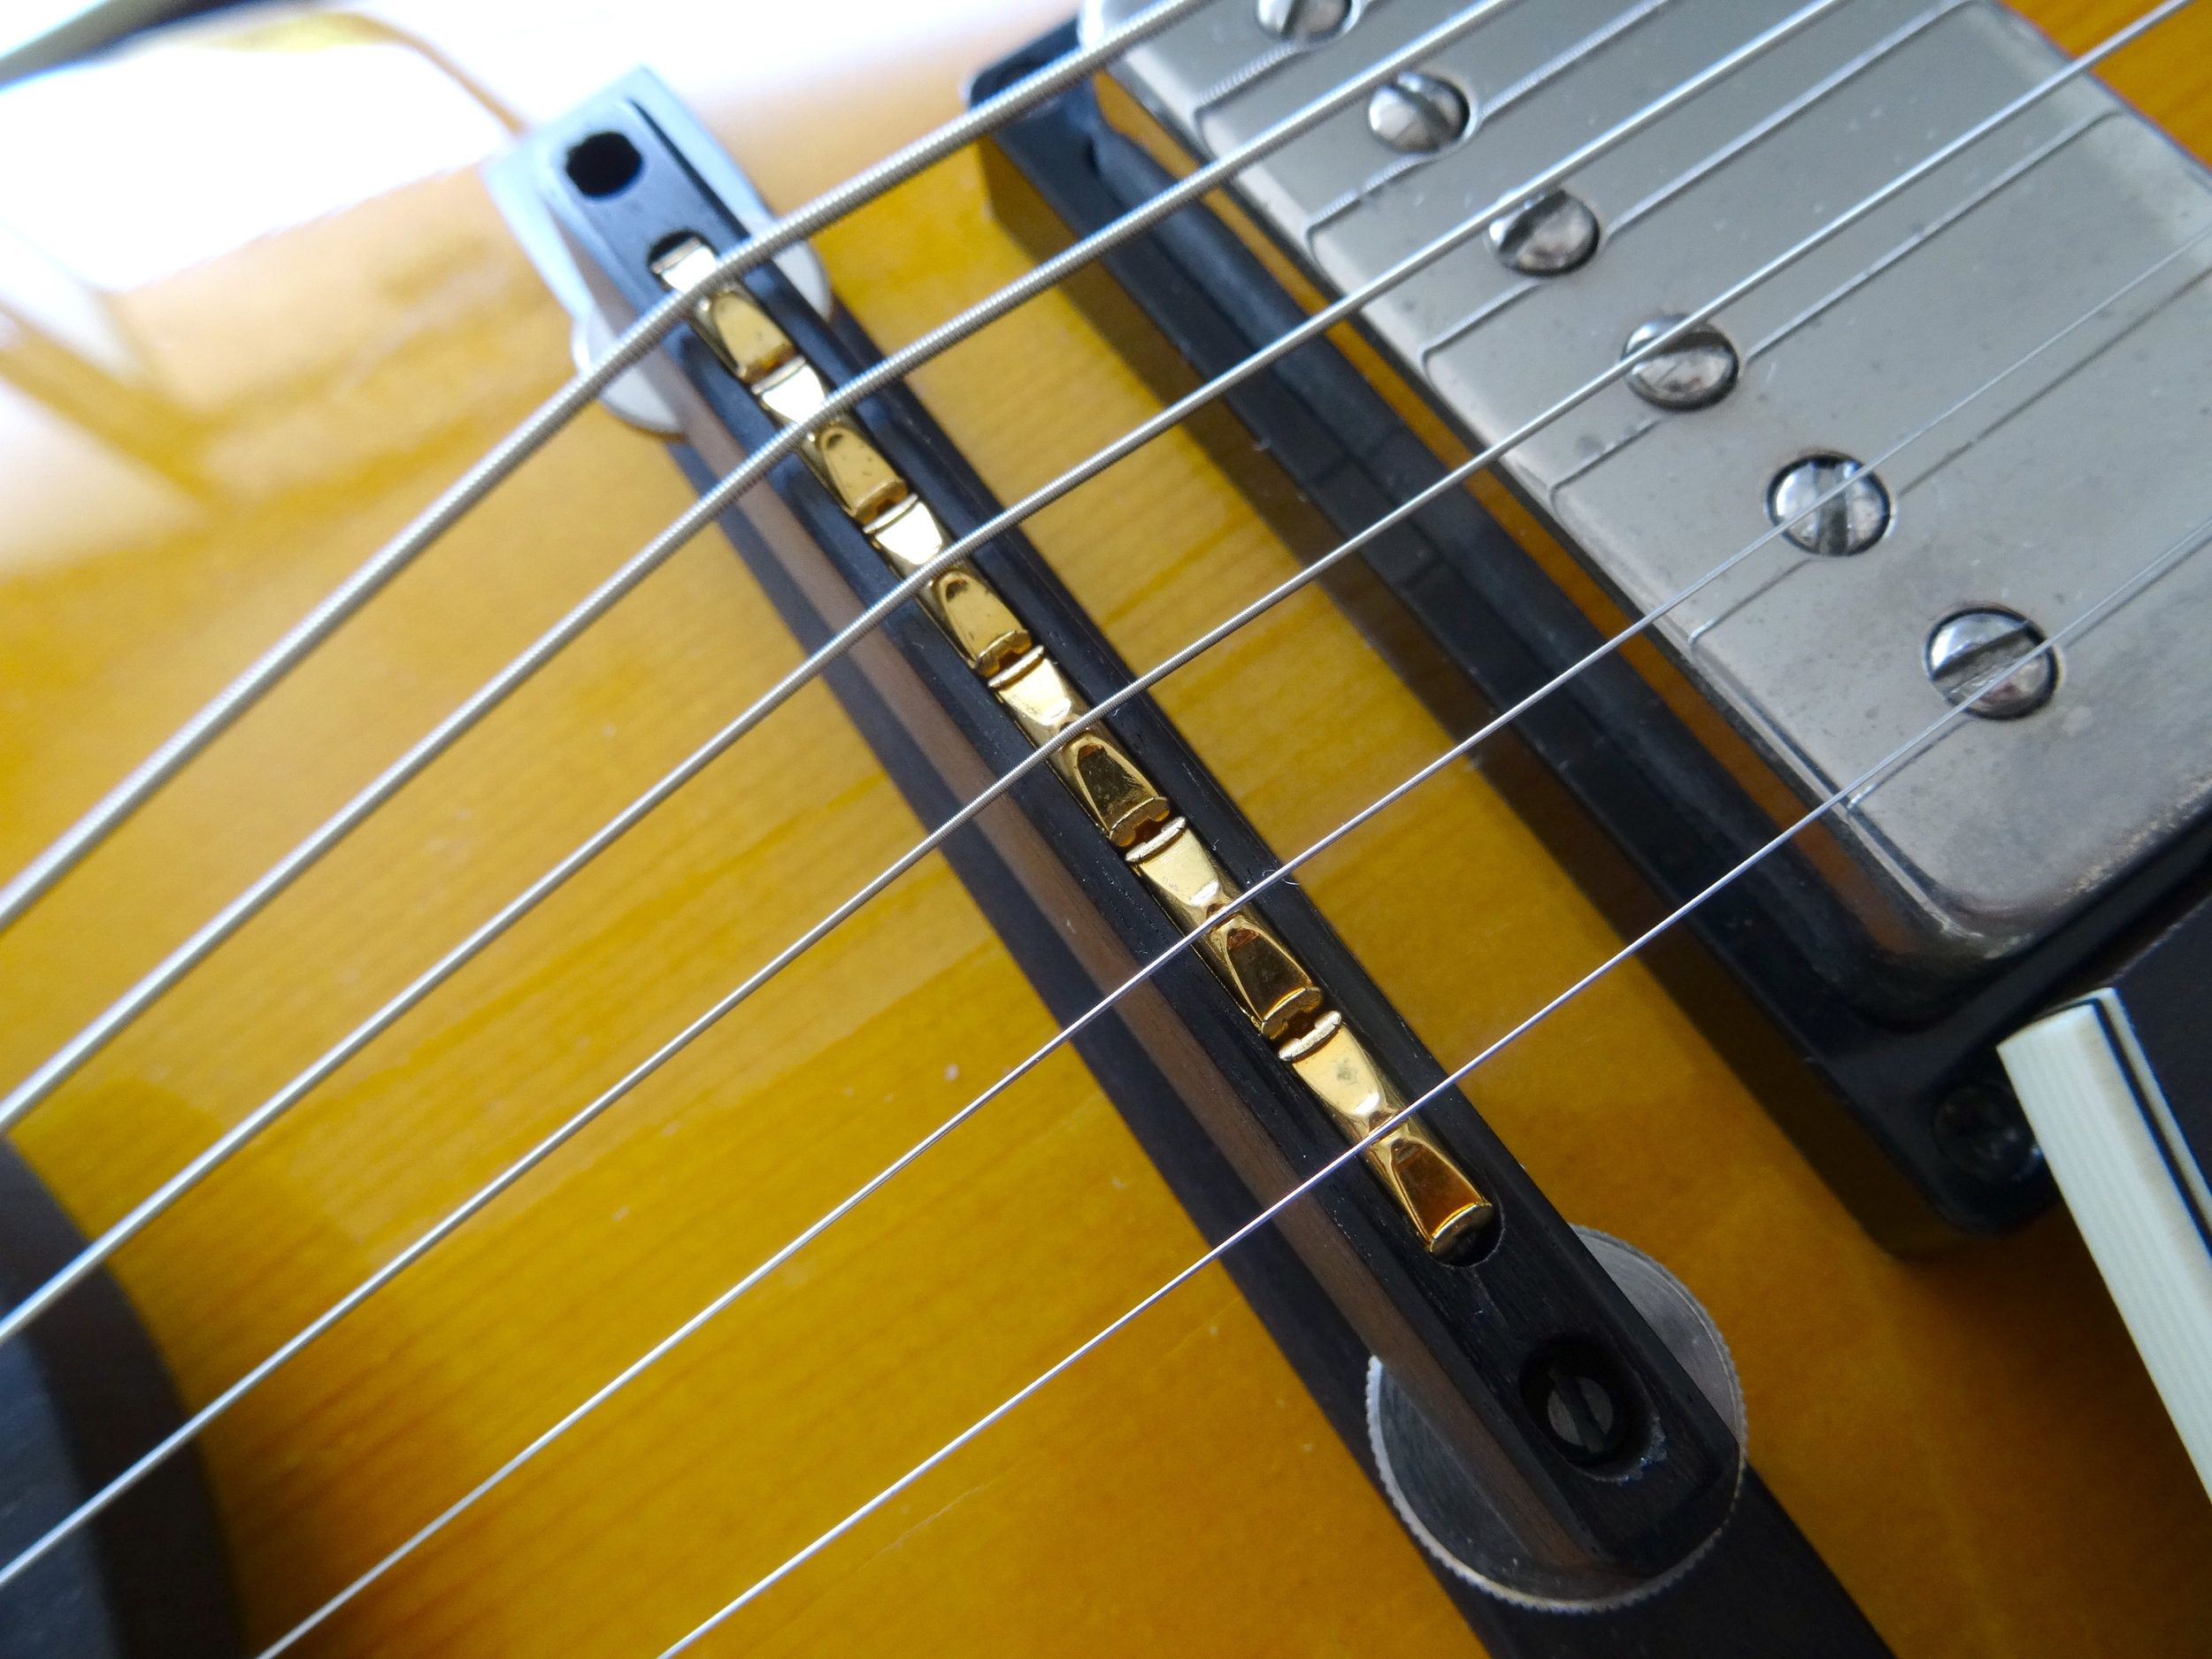 Each string has its own saddle pickup, which in turn can be output separately via the MIDI out jack